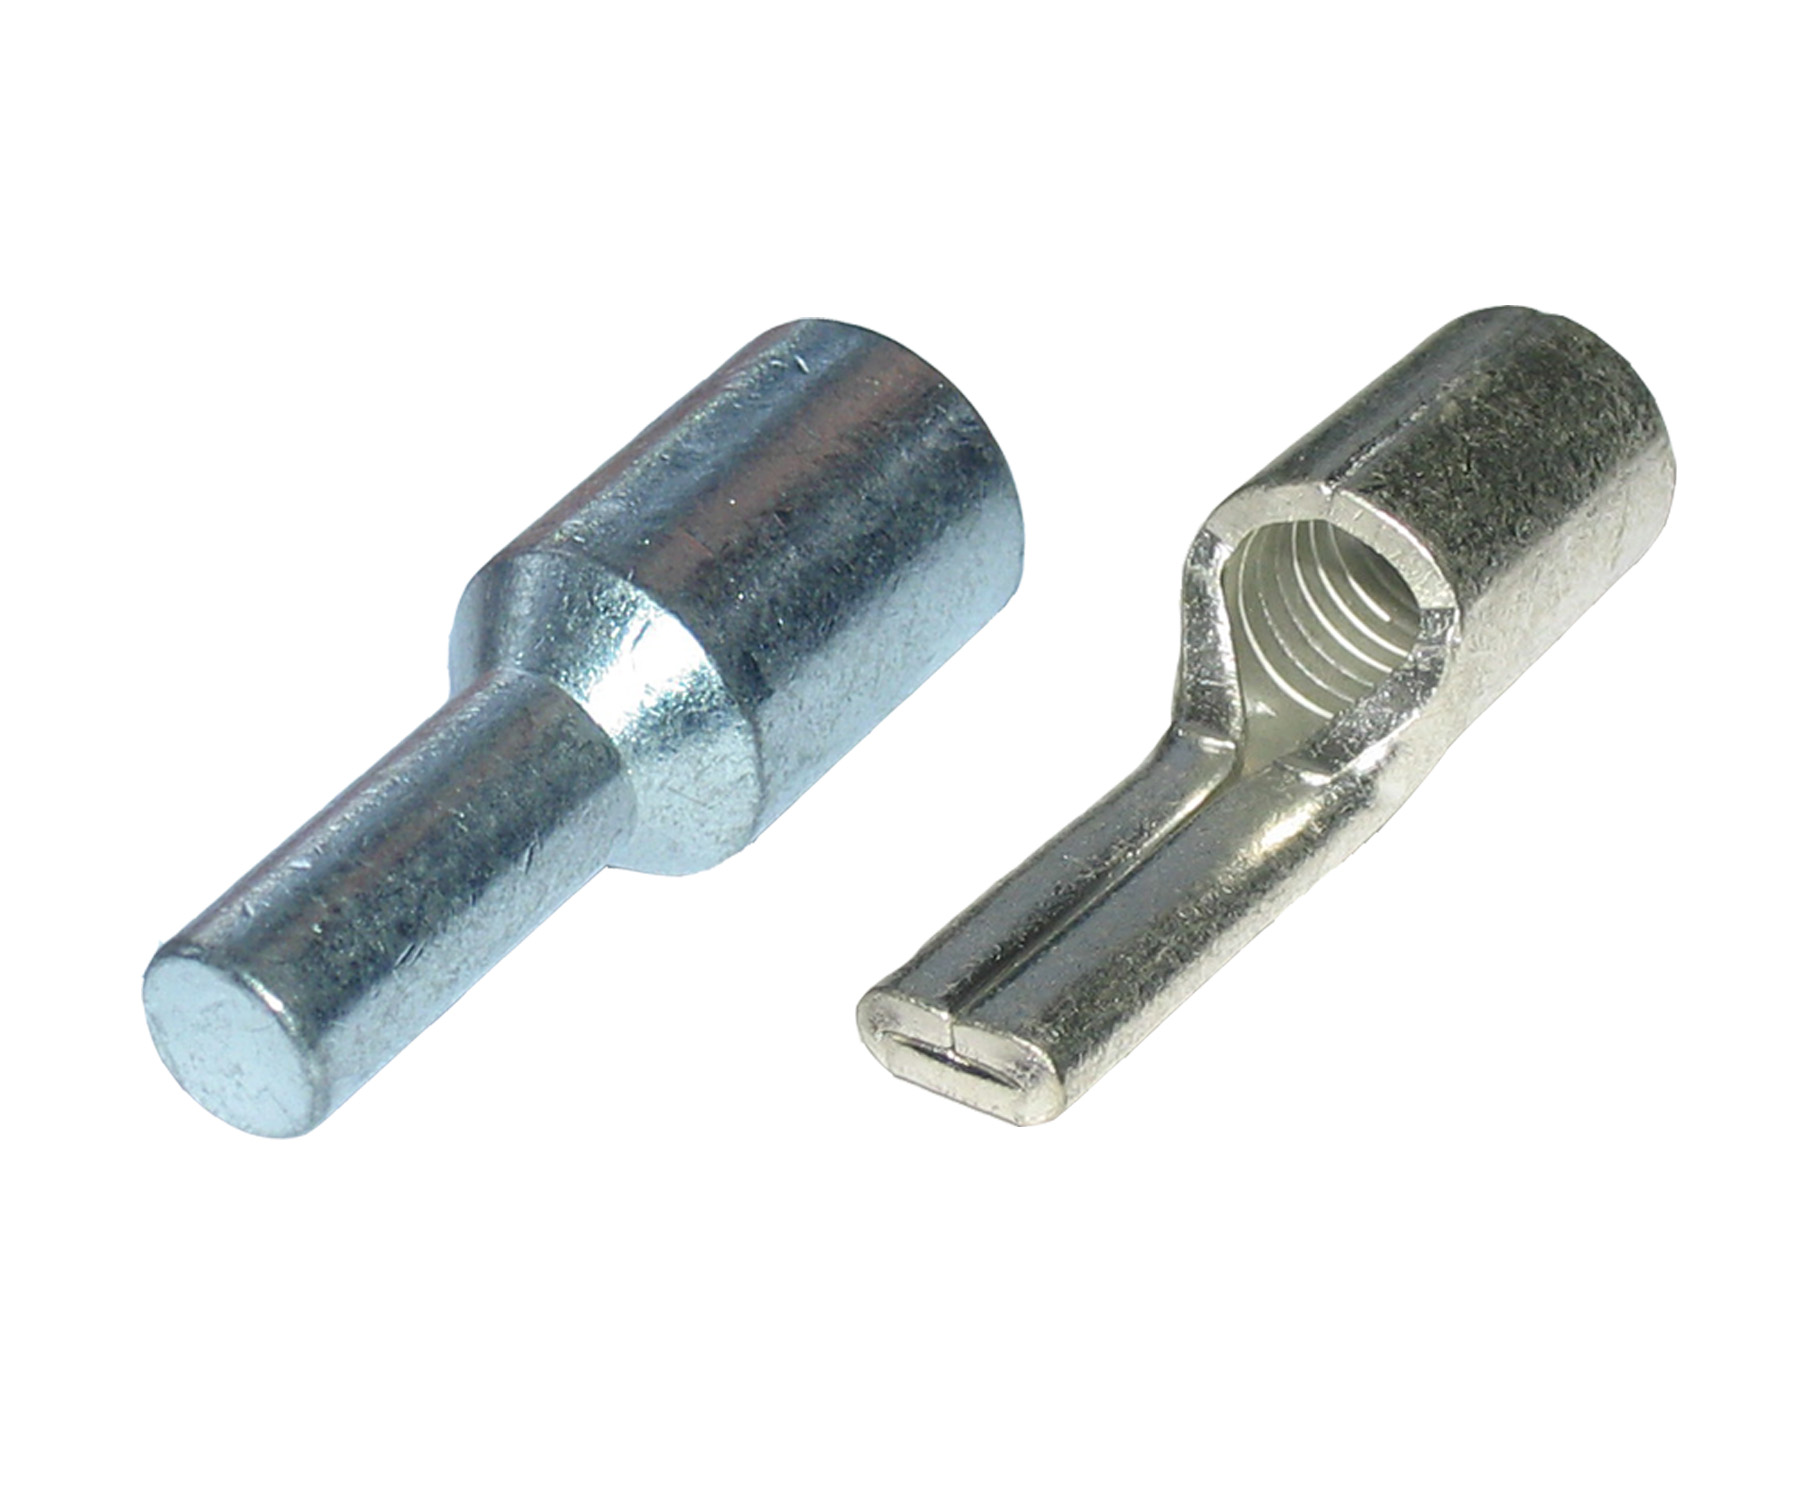 Un Insulated Solid Copper Pin Swa